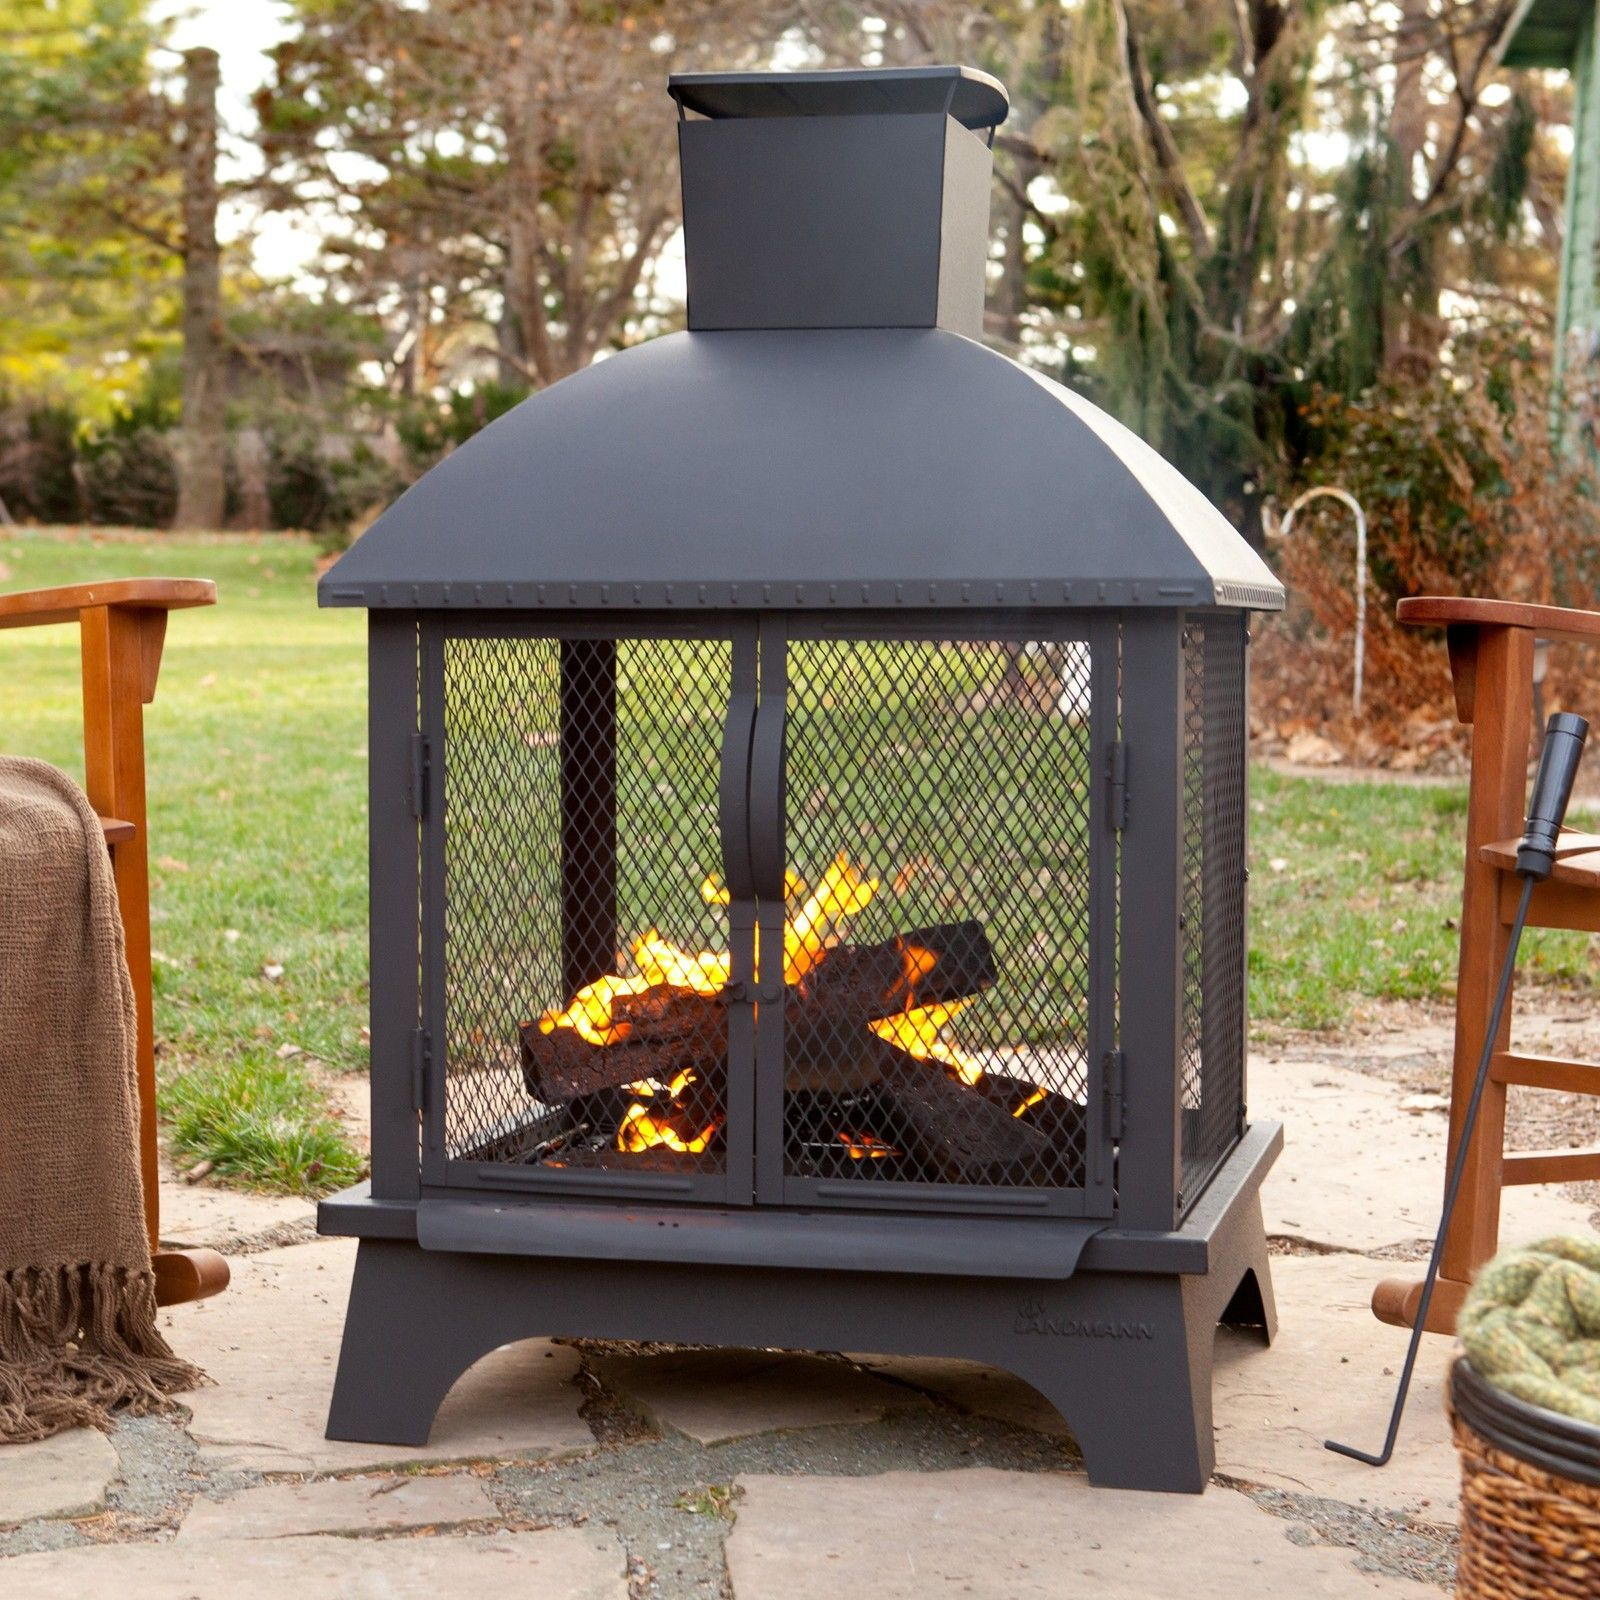 Outdoor Patio Fireplace Wood Burning Fire Pit Chiminea ...